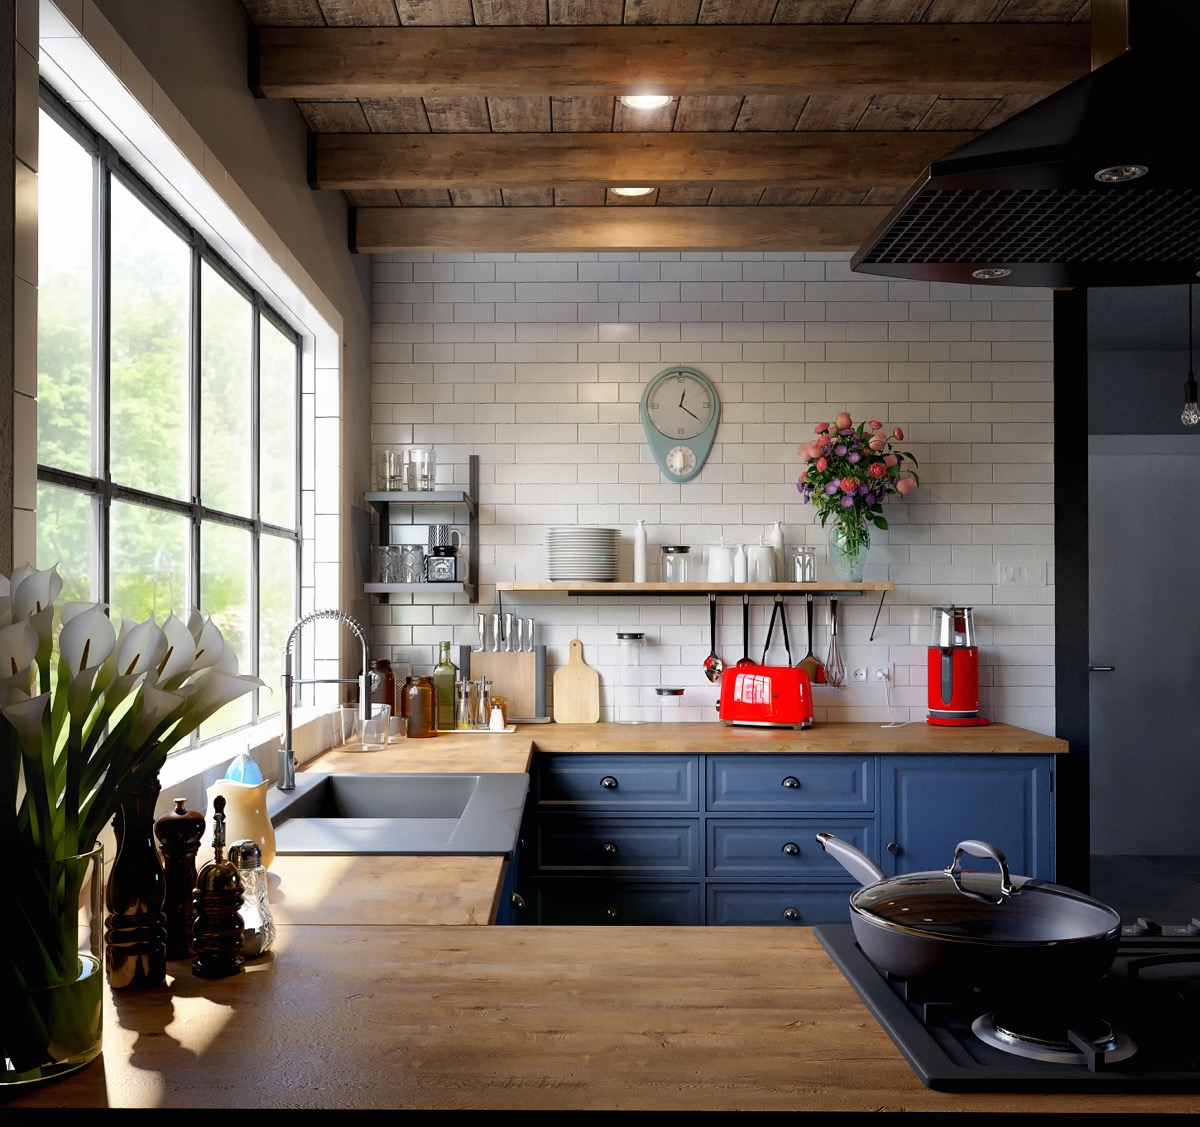 U Shaped Kitchens: 50 Unique U-Shaped Kitchens And Tips You Can Use From Them